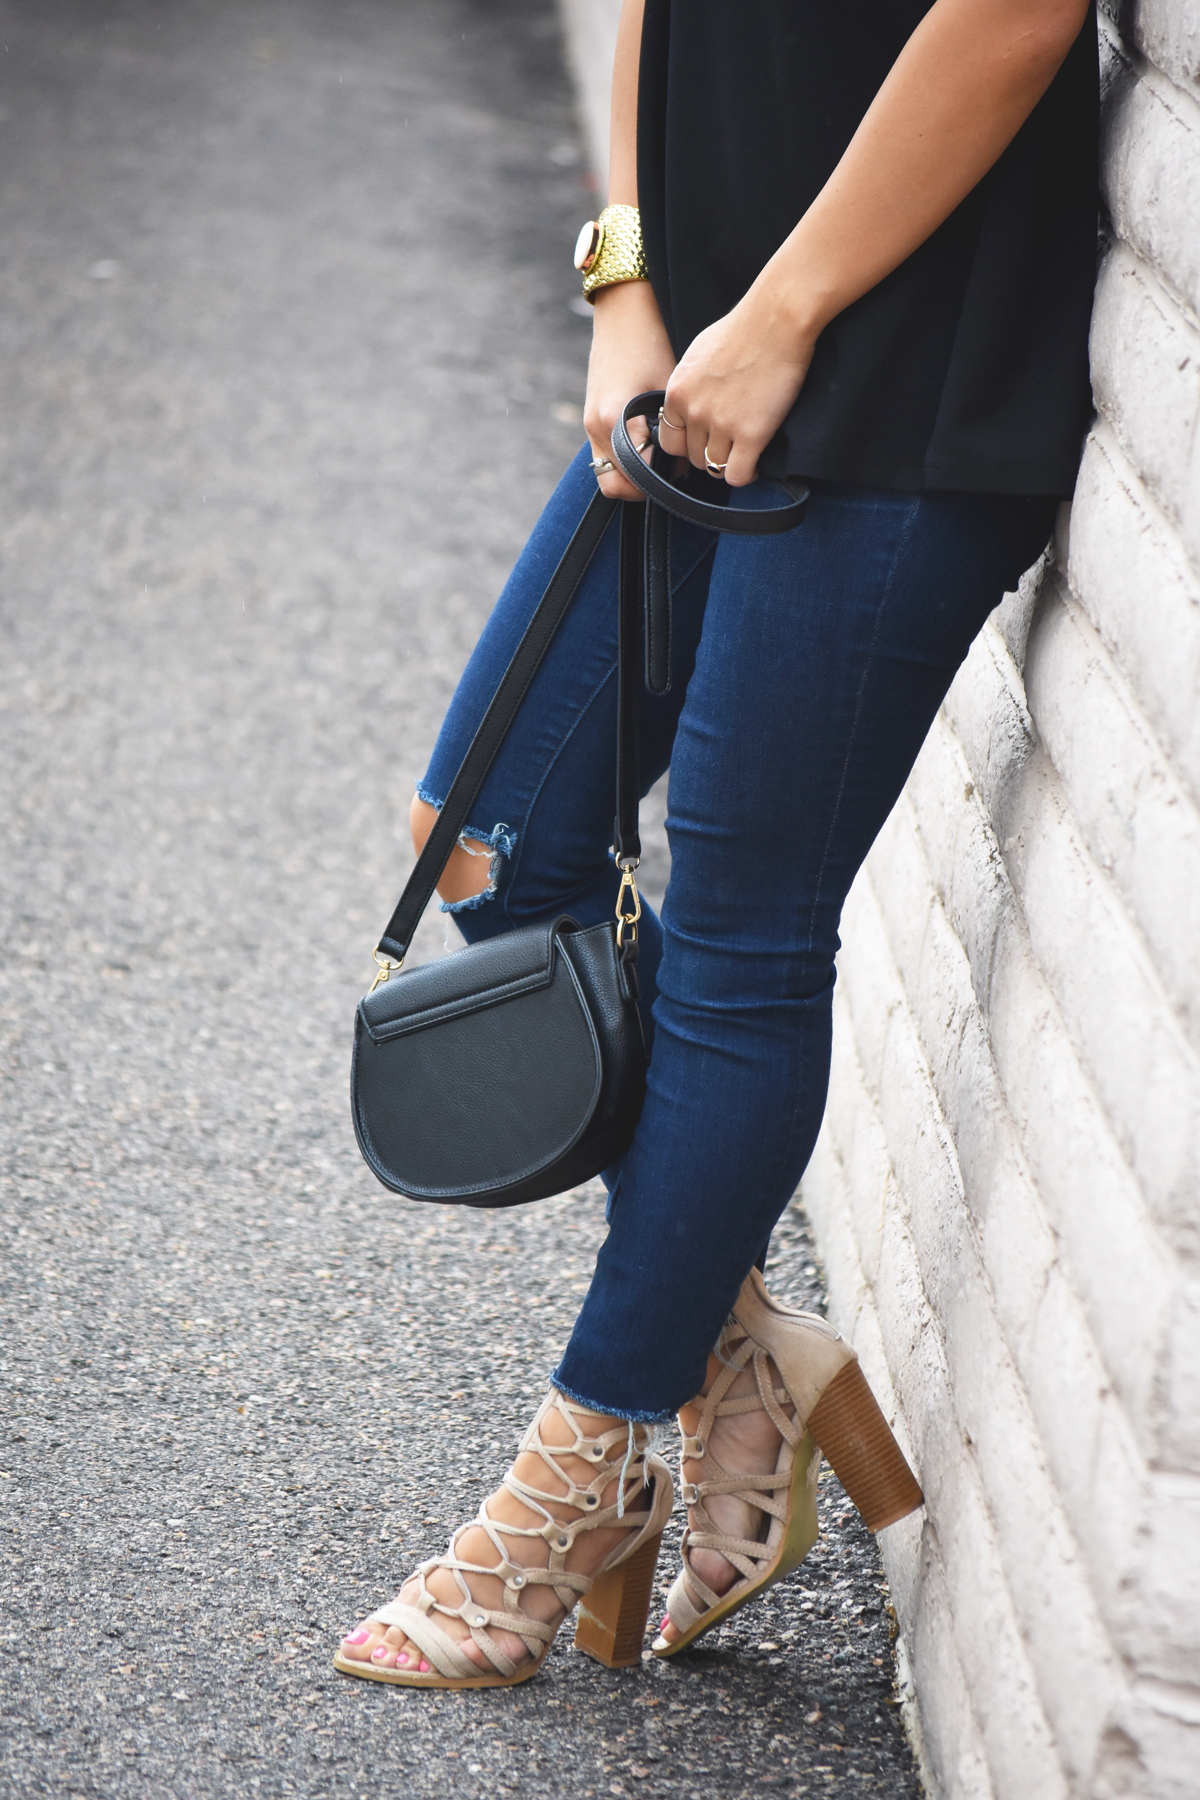 Lace up sandals and madewell jeans